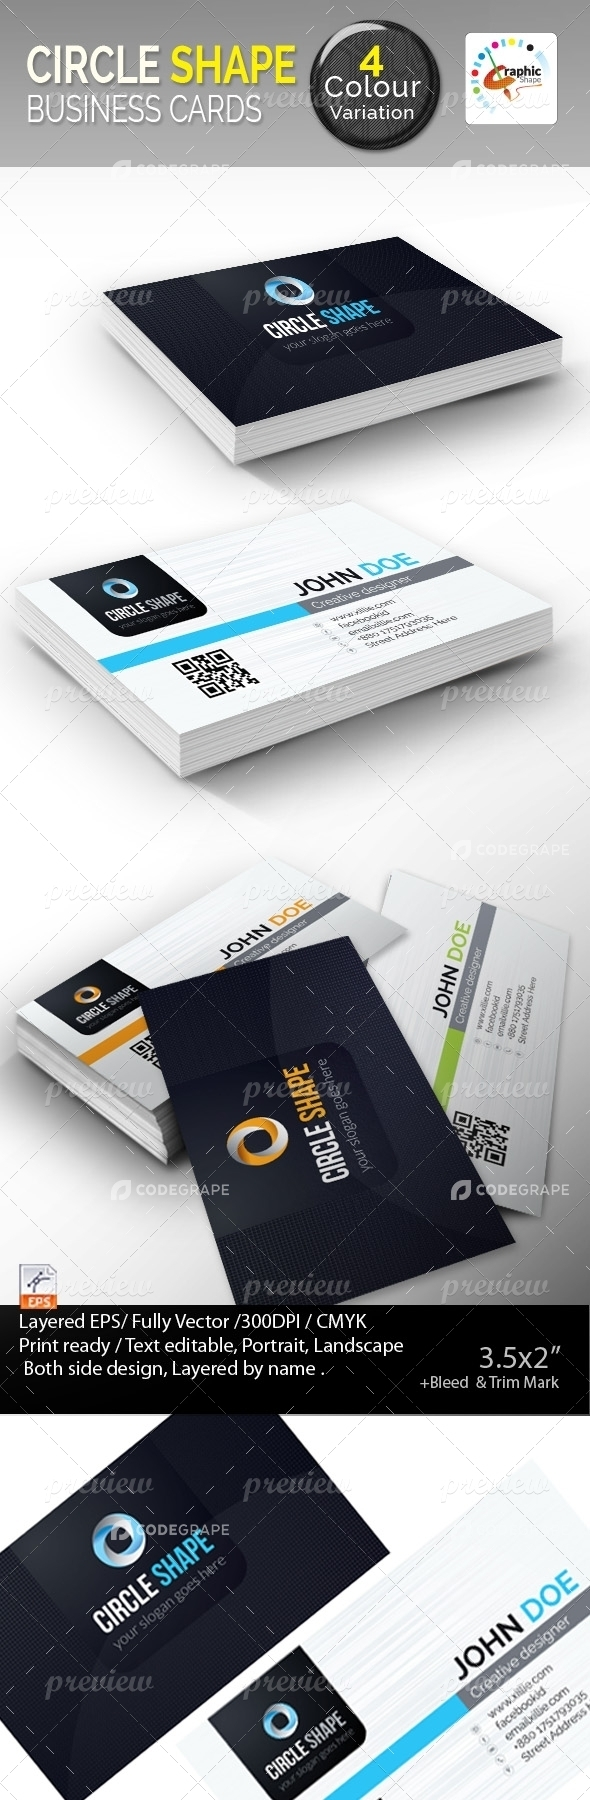 Circle Shape Business Cards